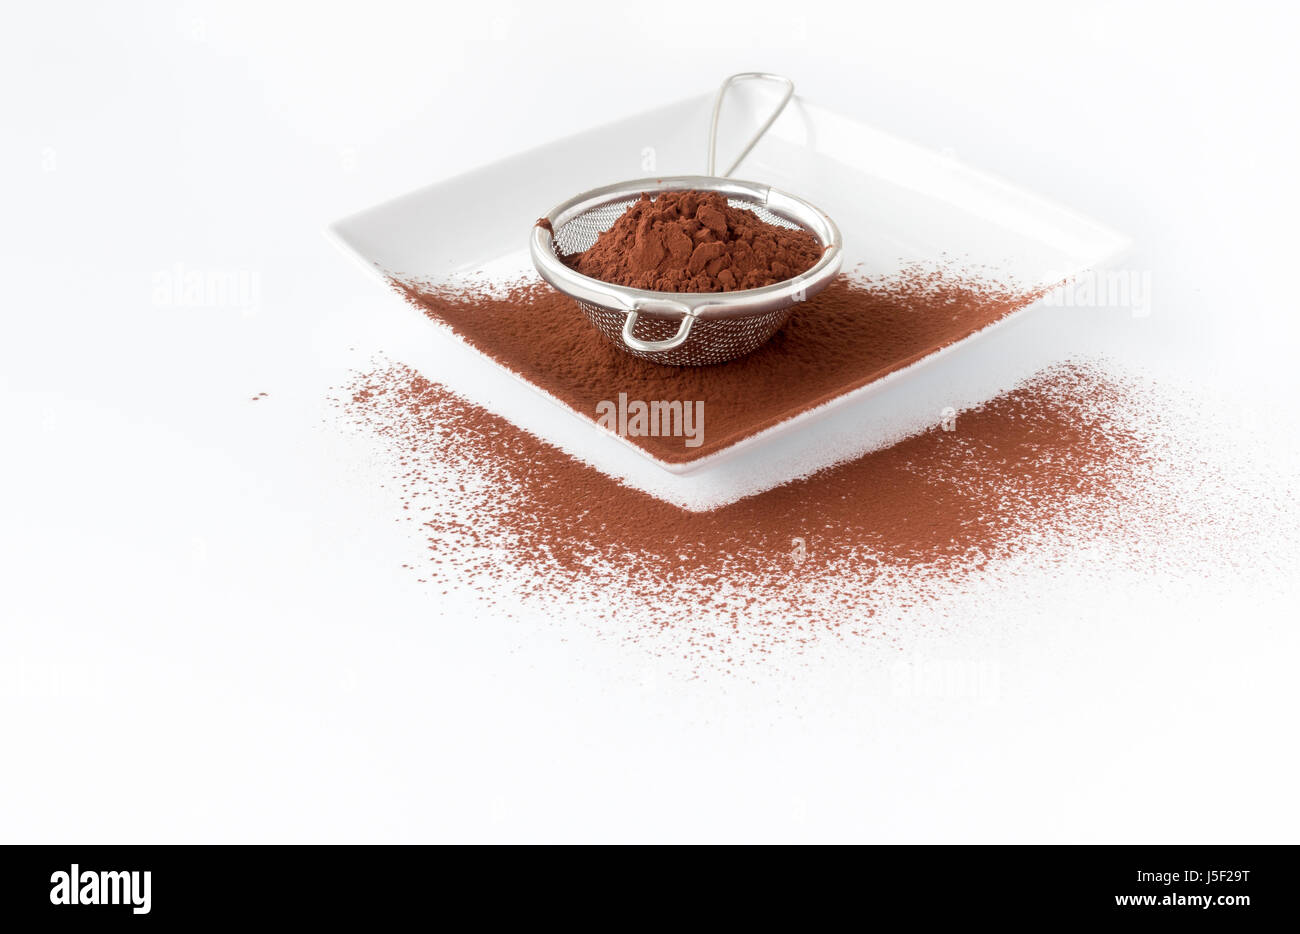 Close up of a metal sieve filled with cocoa powder on a white square porcelain plate. White background with copy - Stock Image